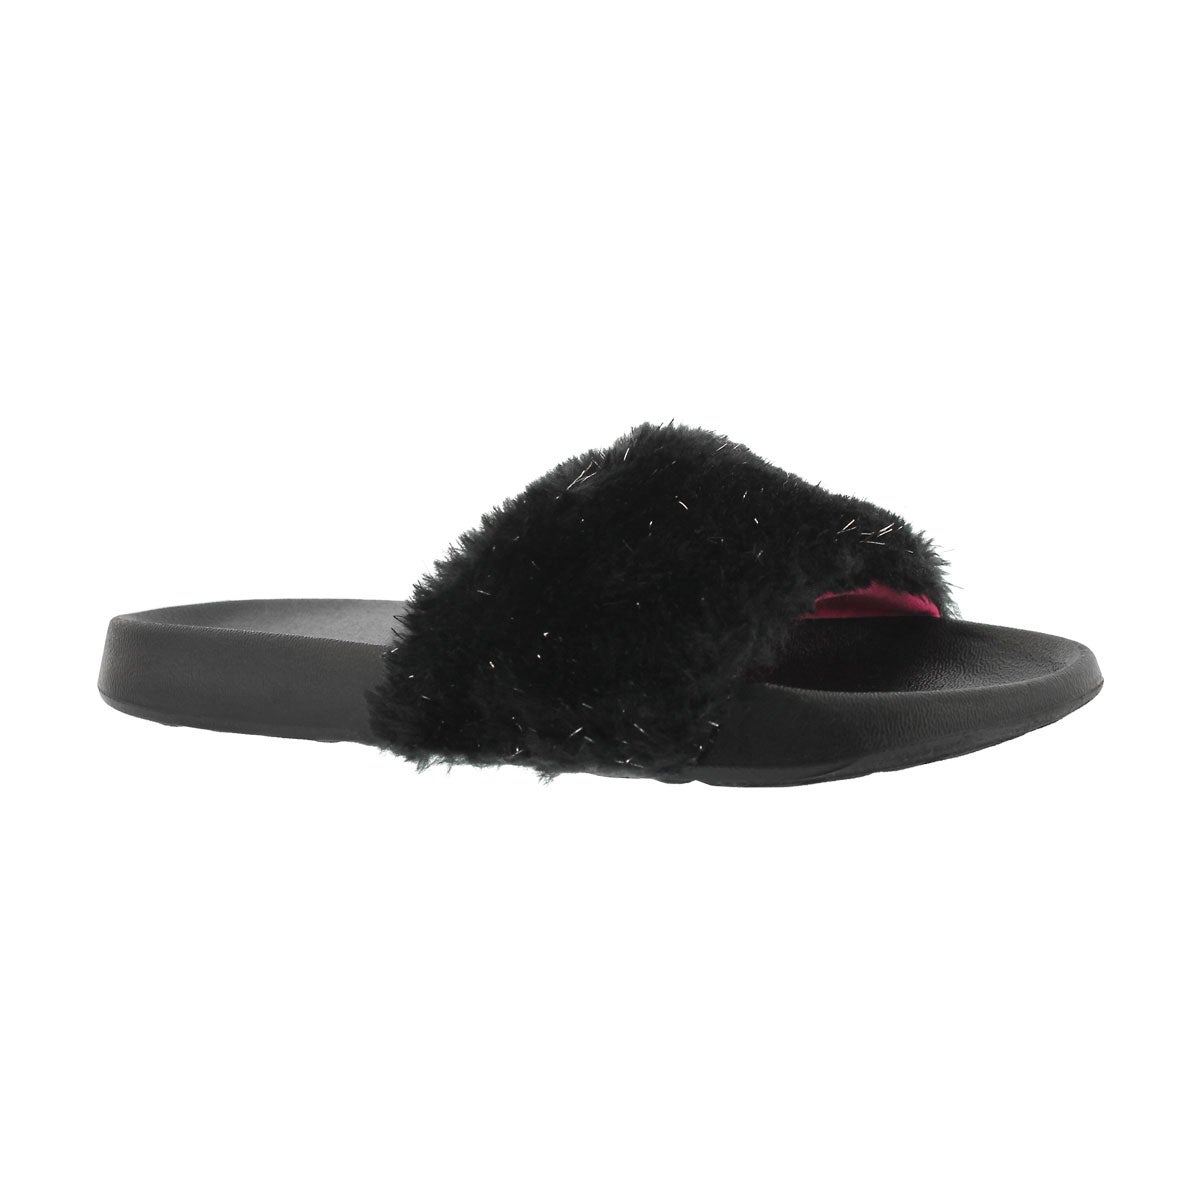 Girls' TBA black sparkle fur slide sandals